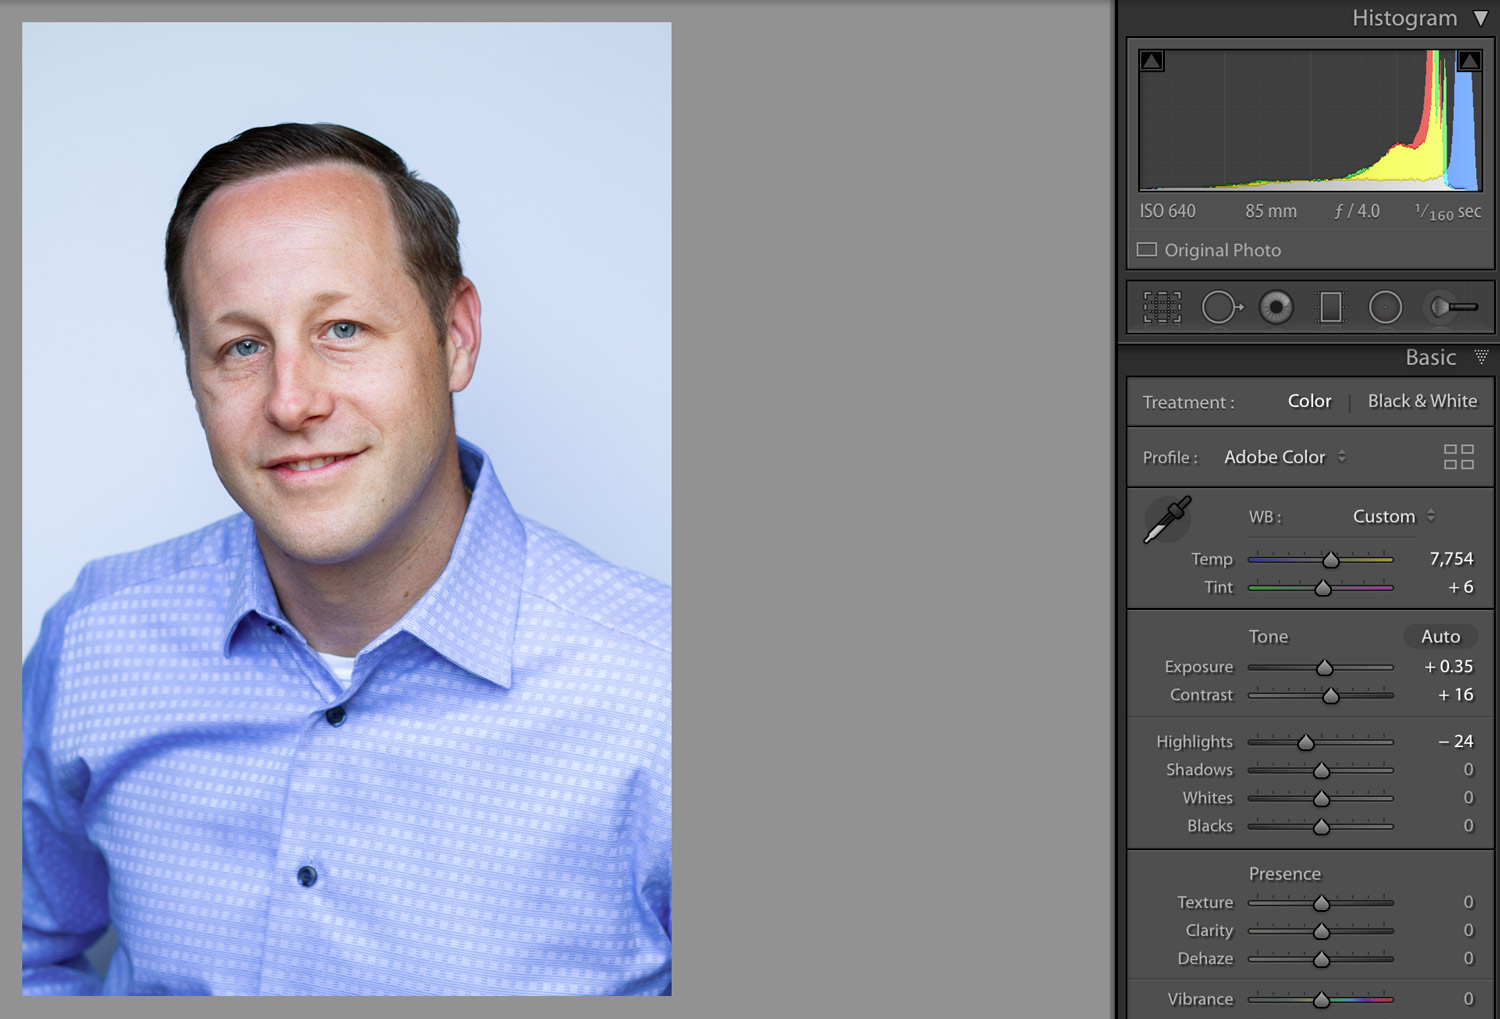 Professional Headshot after initial editing in Adobe Lightroom